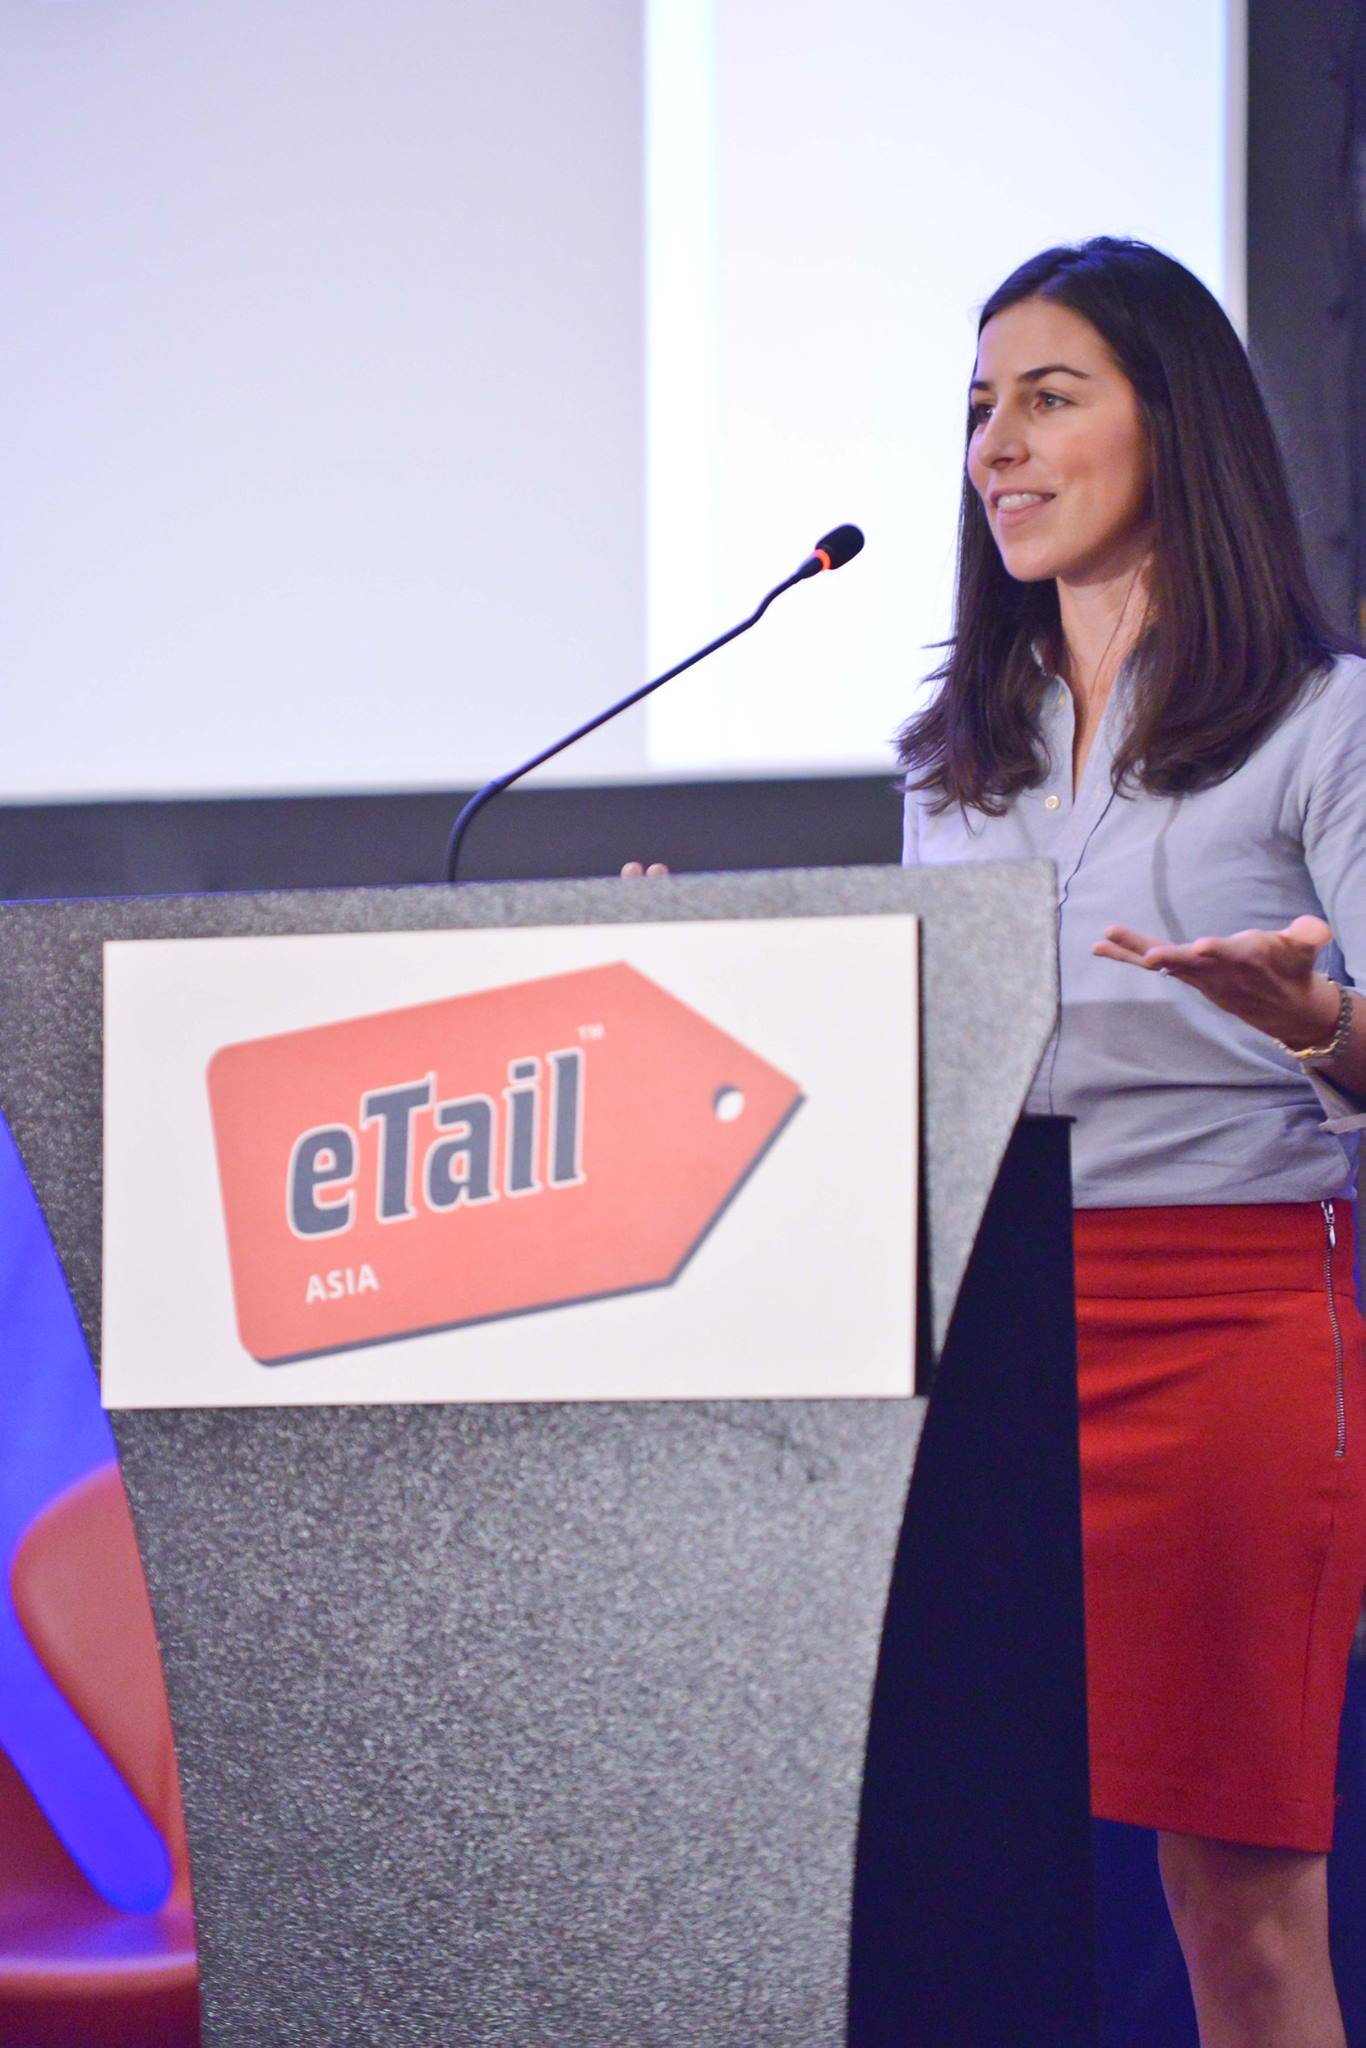 etail asia leanplum head of field marketing